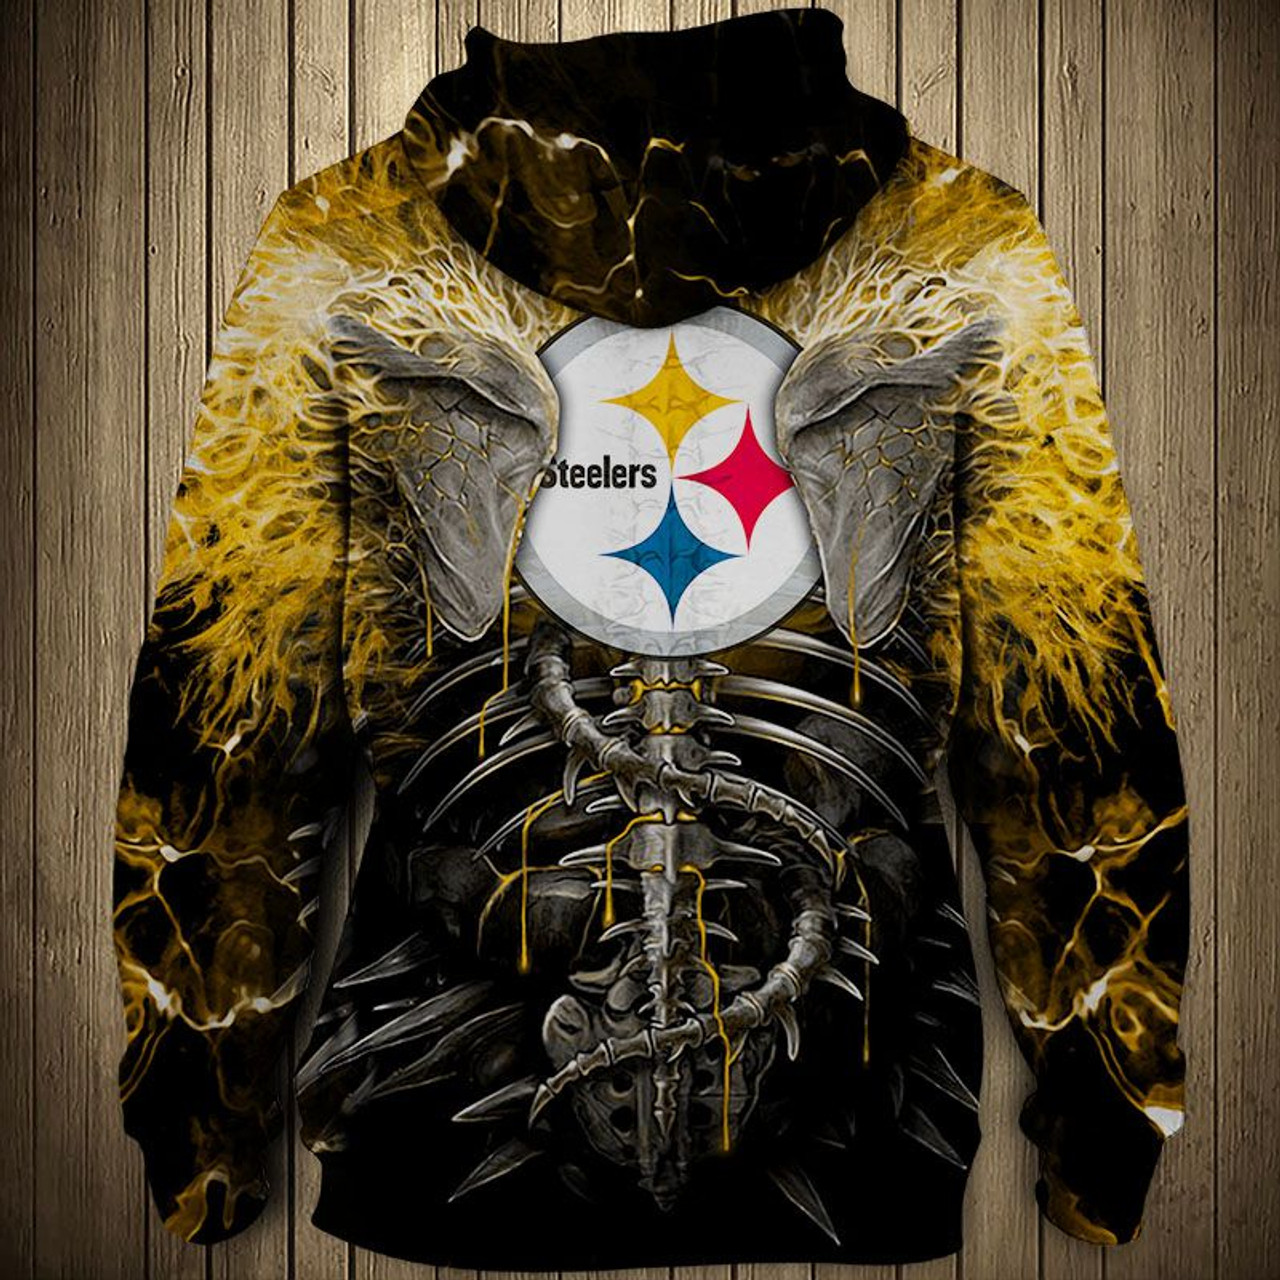 **(OFFICIAL-N.F.L.PITTSBURGH-STEELERS-ZIPPERED-HOODIES/CUSTOM-3D-NEON-YELLOW-STEELERS-ELECTRIC-SCREAM'IN-SKULLS-PREMIUM-3D-GRAPHIC-PRINTED-STEELERS-LOGOS & OFFICIAL-CLASSIC-STEELERS-TEAM-COLORS/DOUBLE-SIDED-ALL-OVER-DESIGN-ZIPPERED-TEAM-HOODIES)**